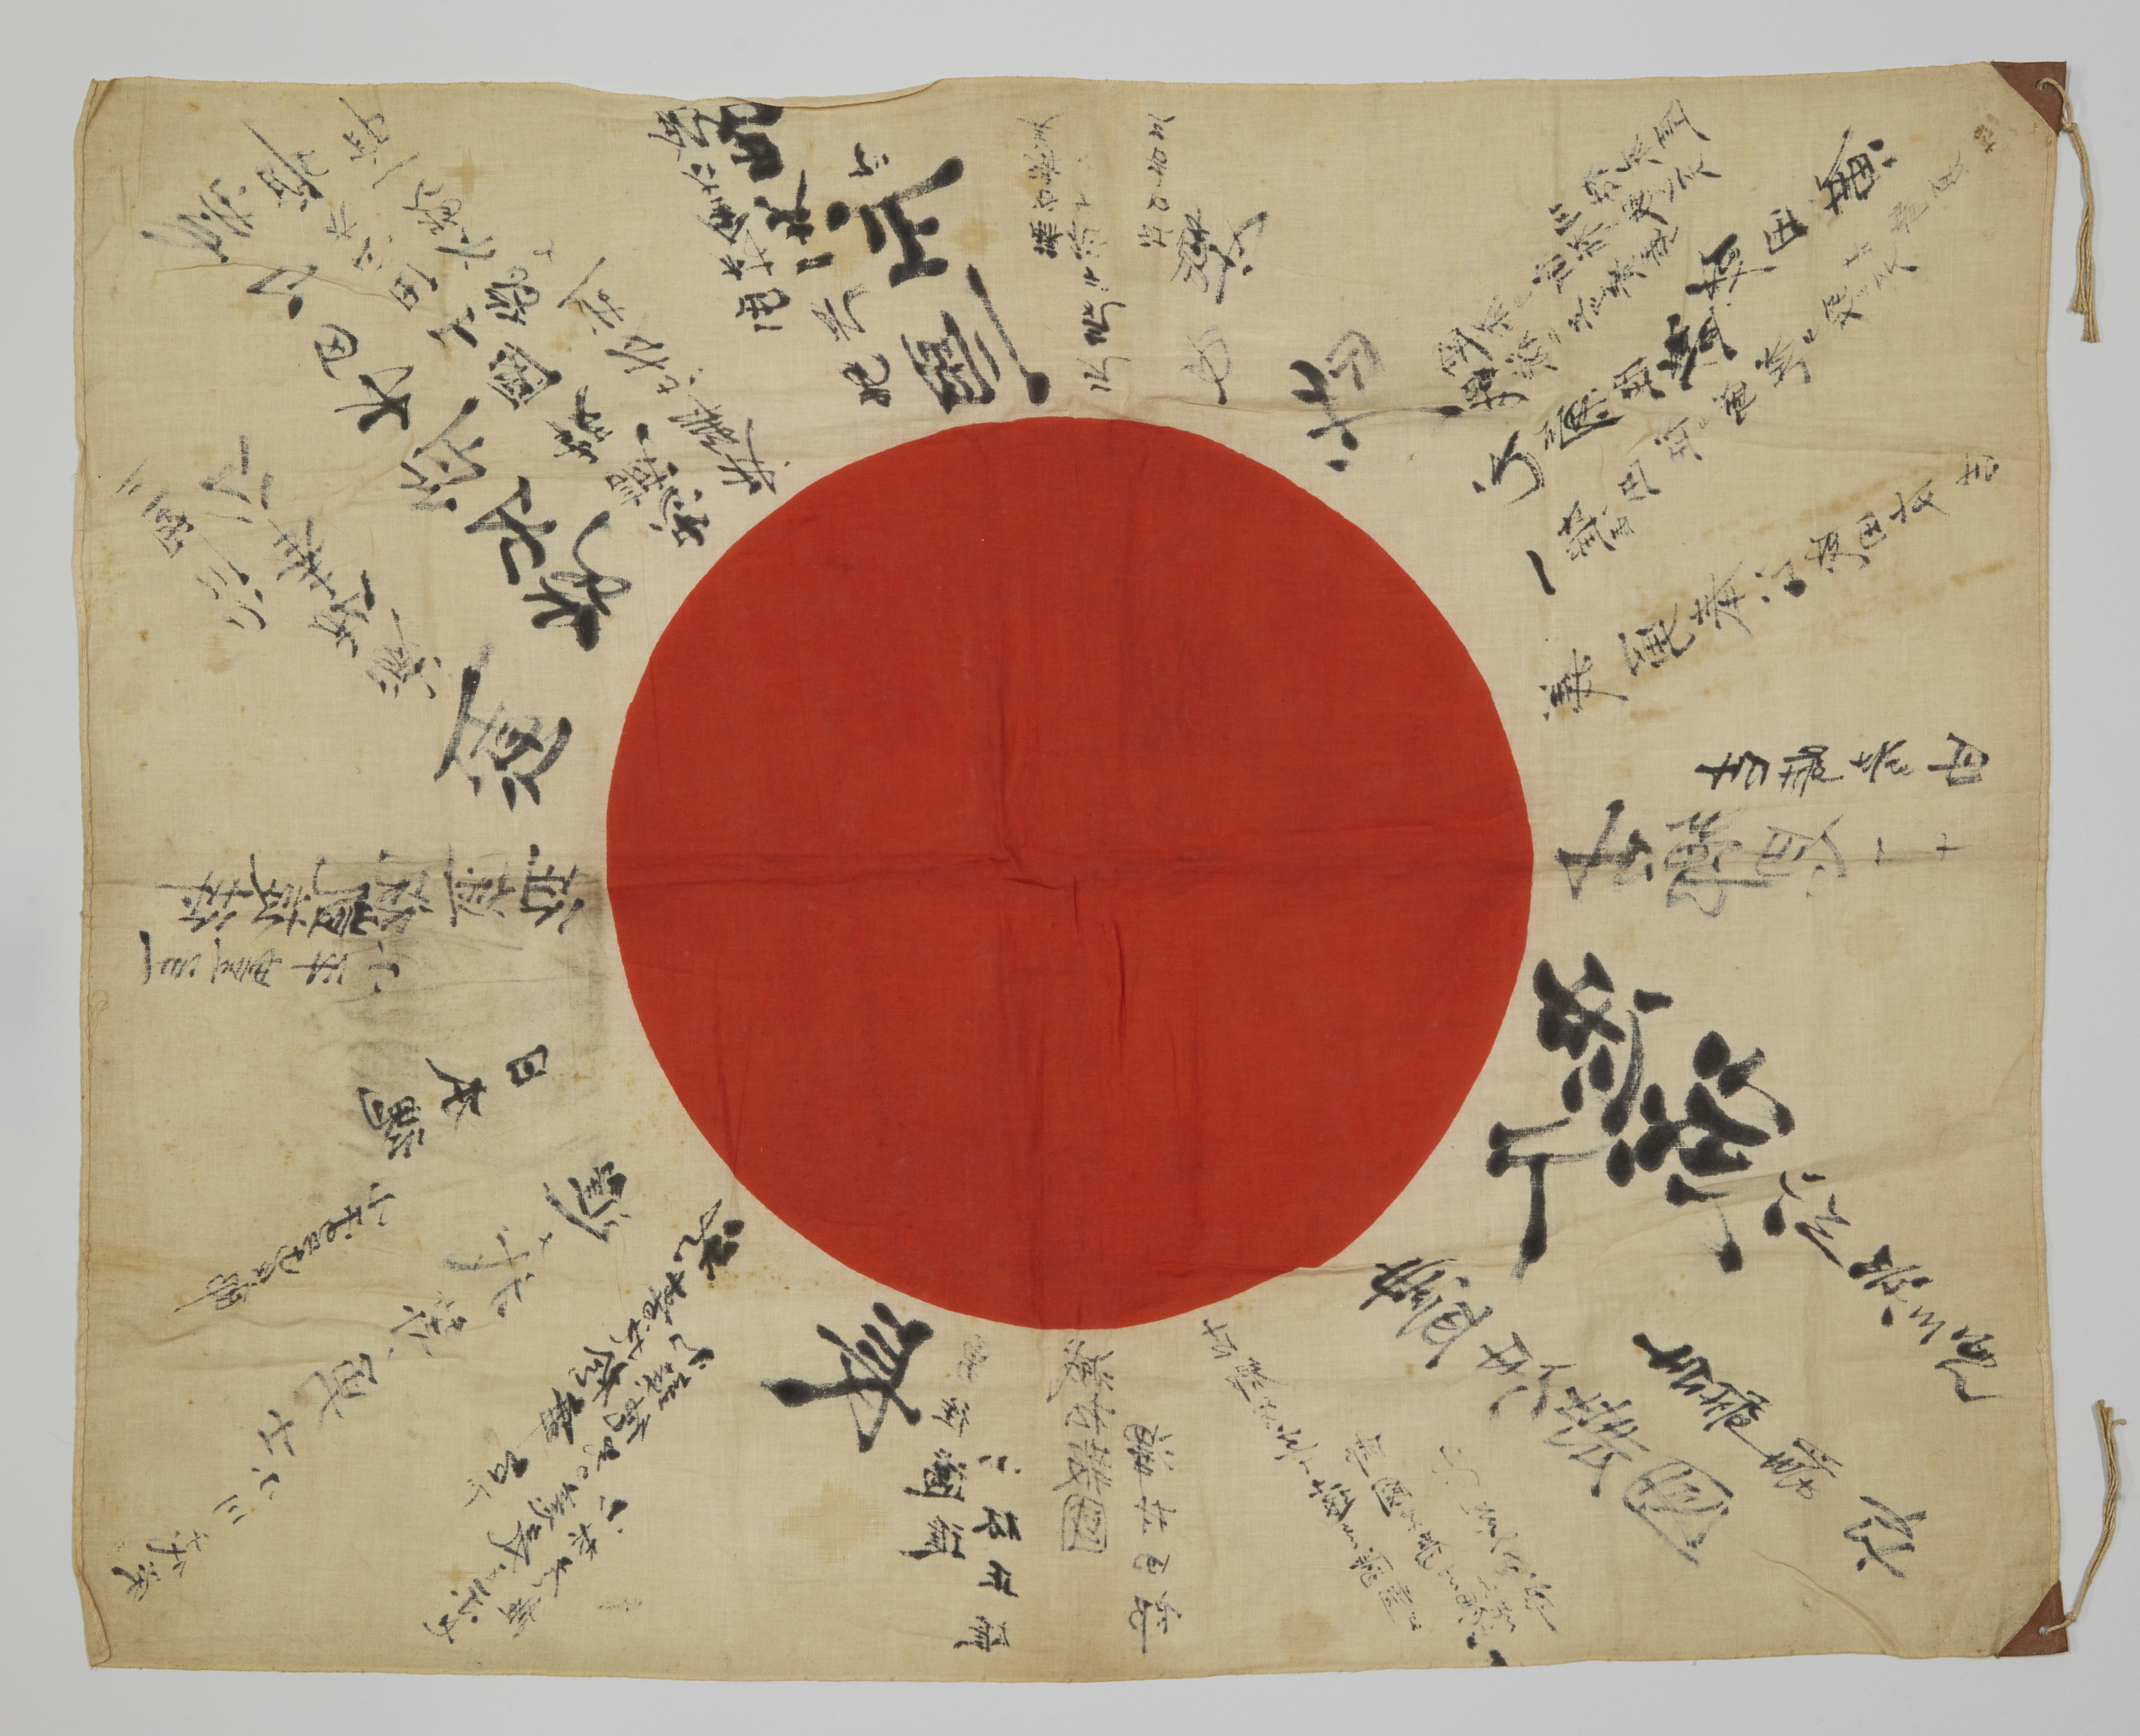 """Before stabilization, this """"good luck"""" flag, or yosegaki hinomaru, shows the history of its age through discoloration of the fibers and heavy creases where it was folded for many years."""